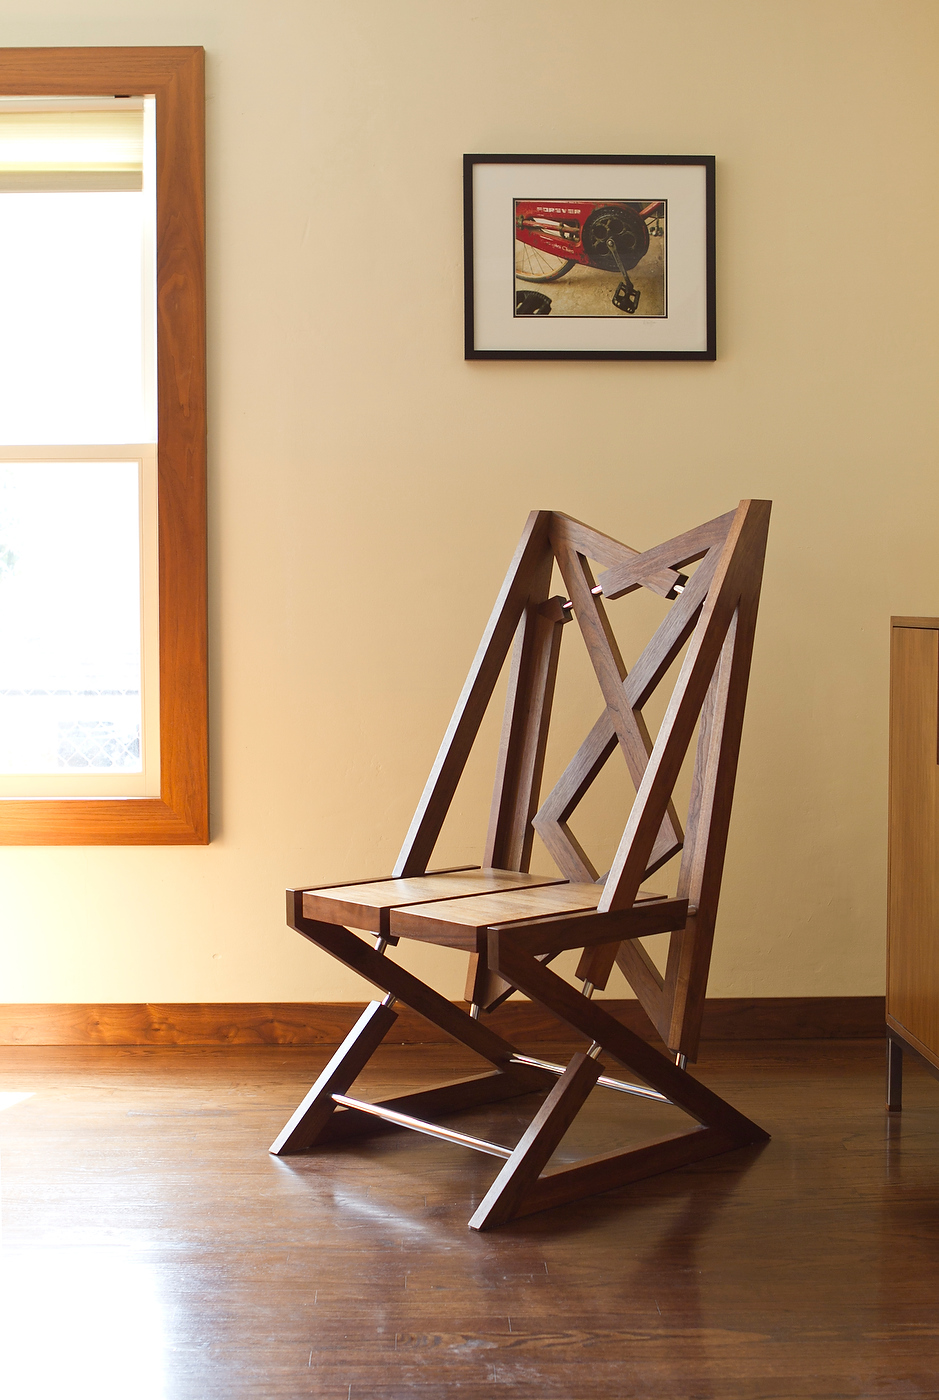 furniture-chair-thing-02.jpg